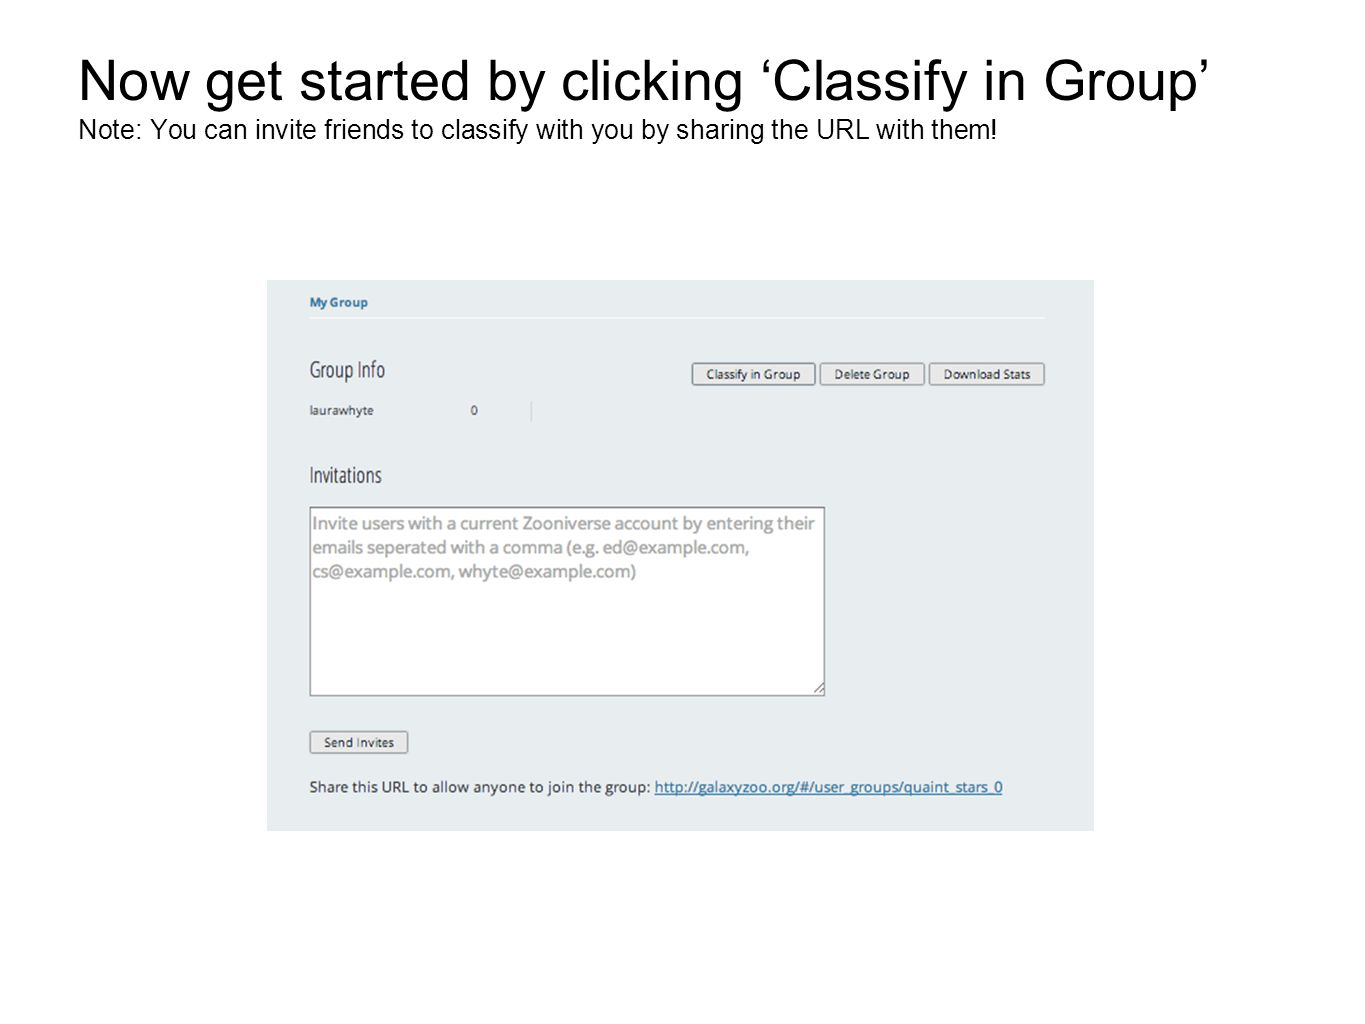 Now get started by clicking 'Classify in Group' Note: You can invite friends to classify with you by sharing the URL with them!